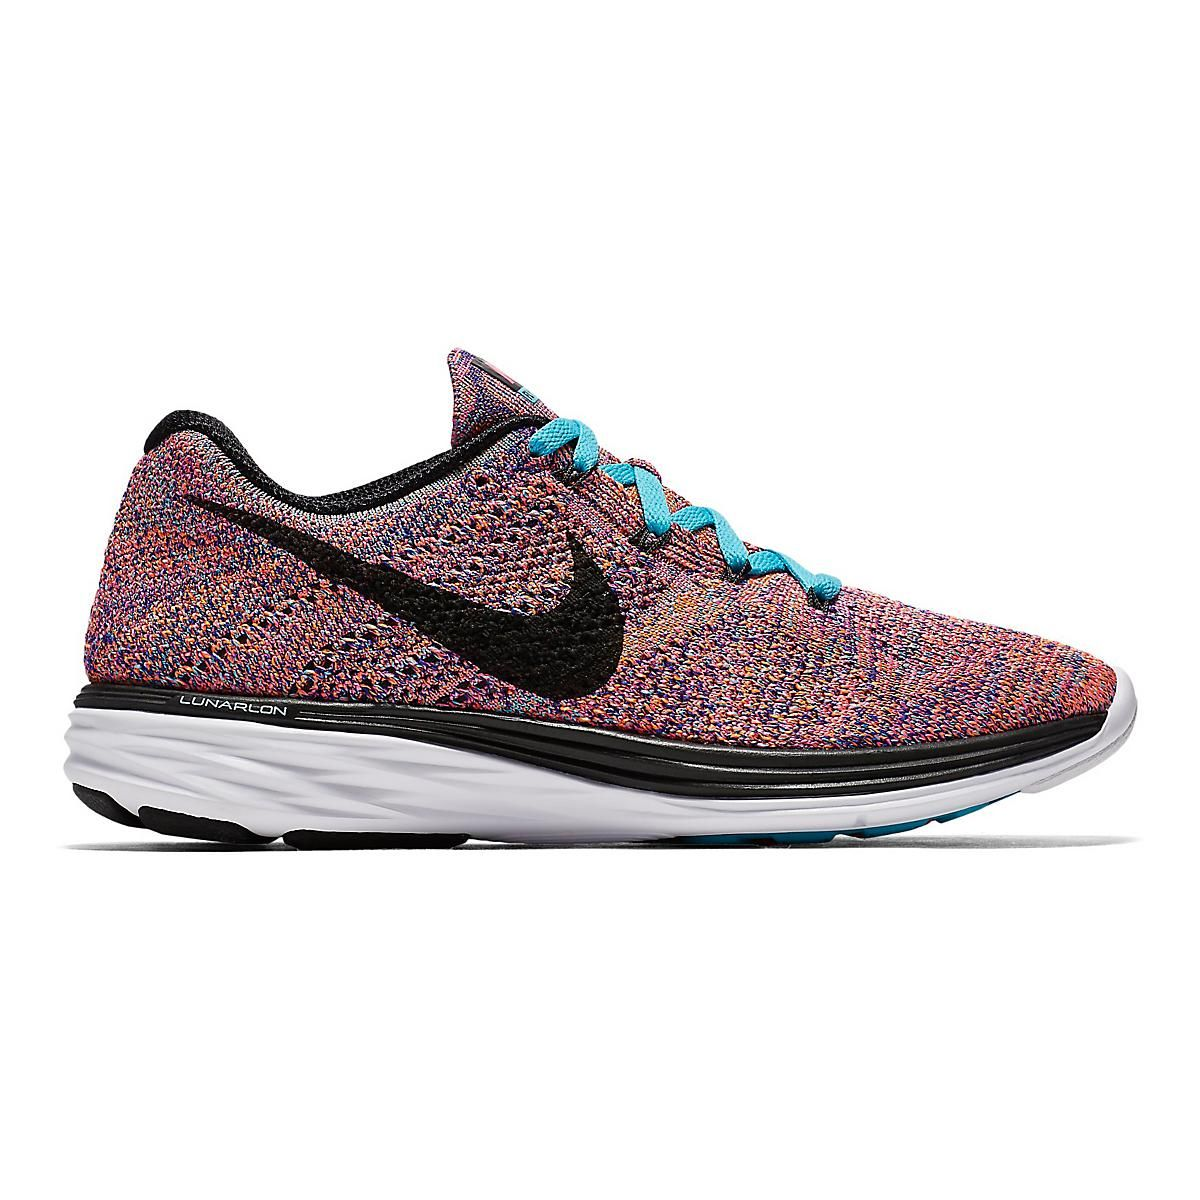 d9b319e418e Break the tape on your 2015 training season with the newly updated Womens  Nike Flyknit Lunar 3